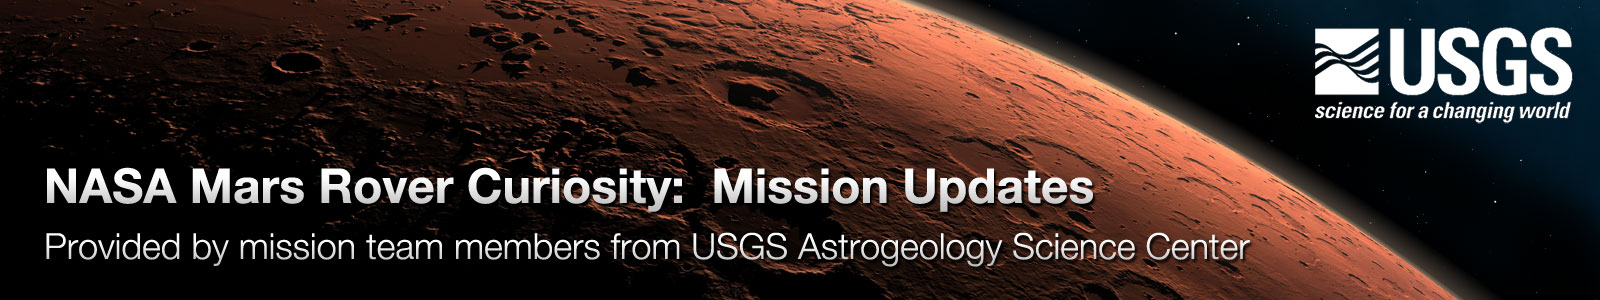 NASA Mars Rover Curiosity: Mission Updates. Provided by mission team members from USGS Astrogeology Science Center